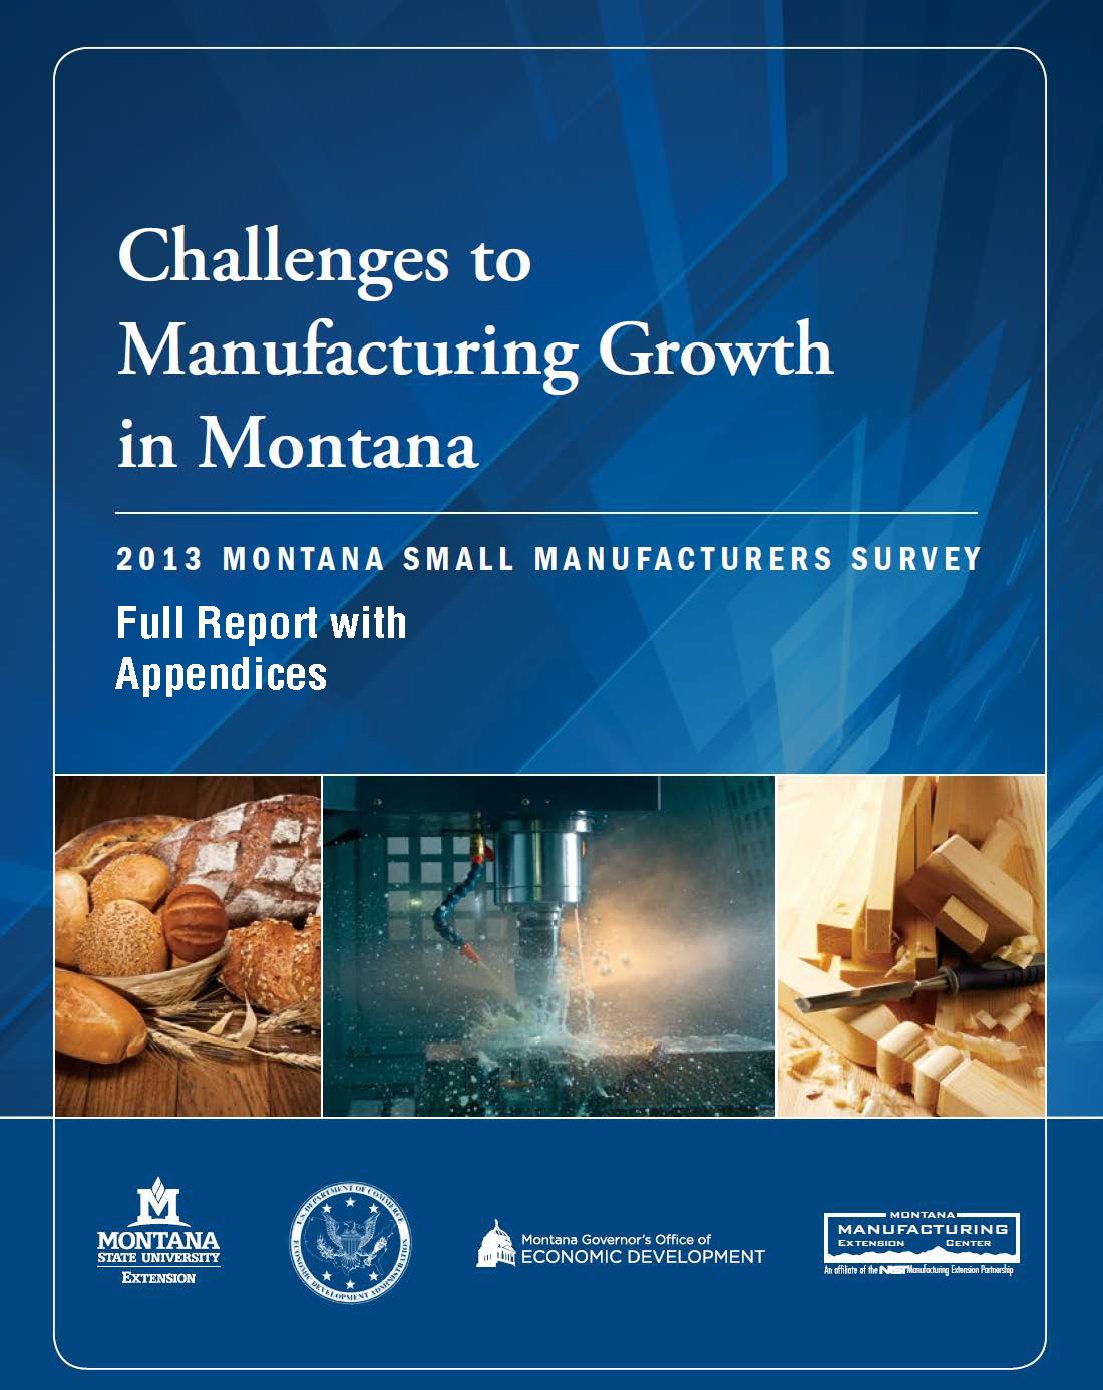 2013 Report Cover Challenges to Mfg Growth